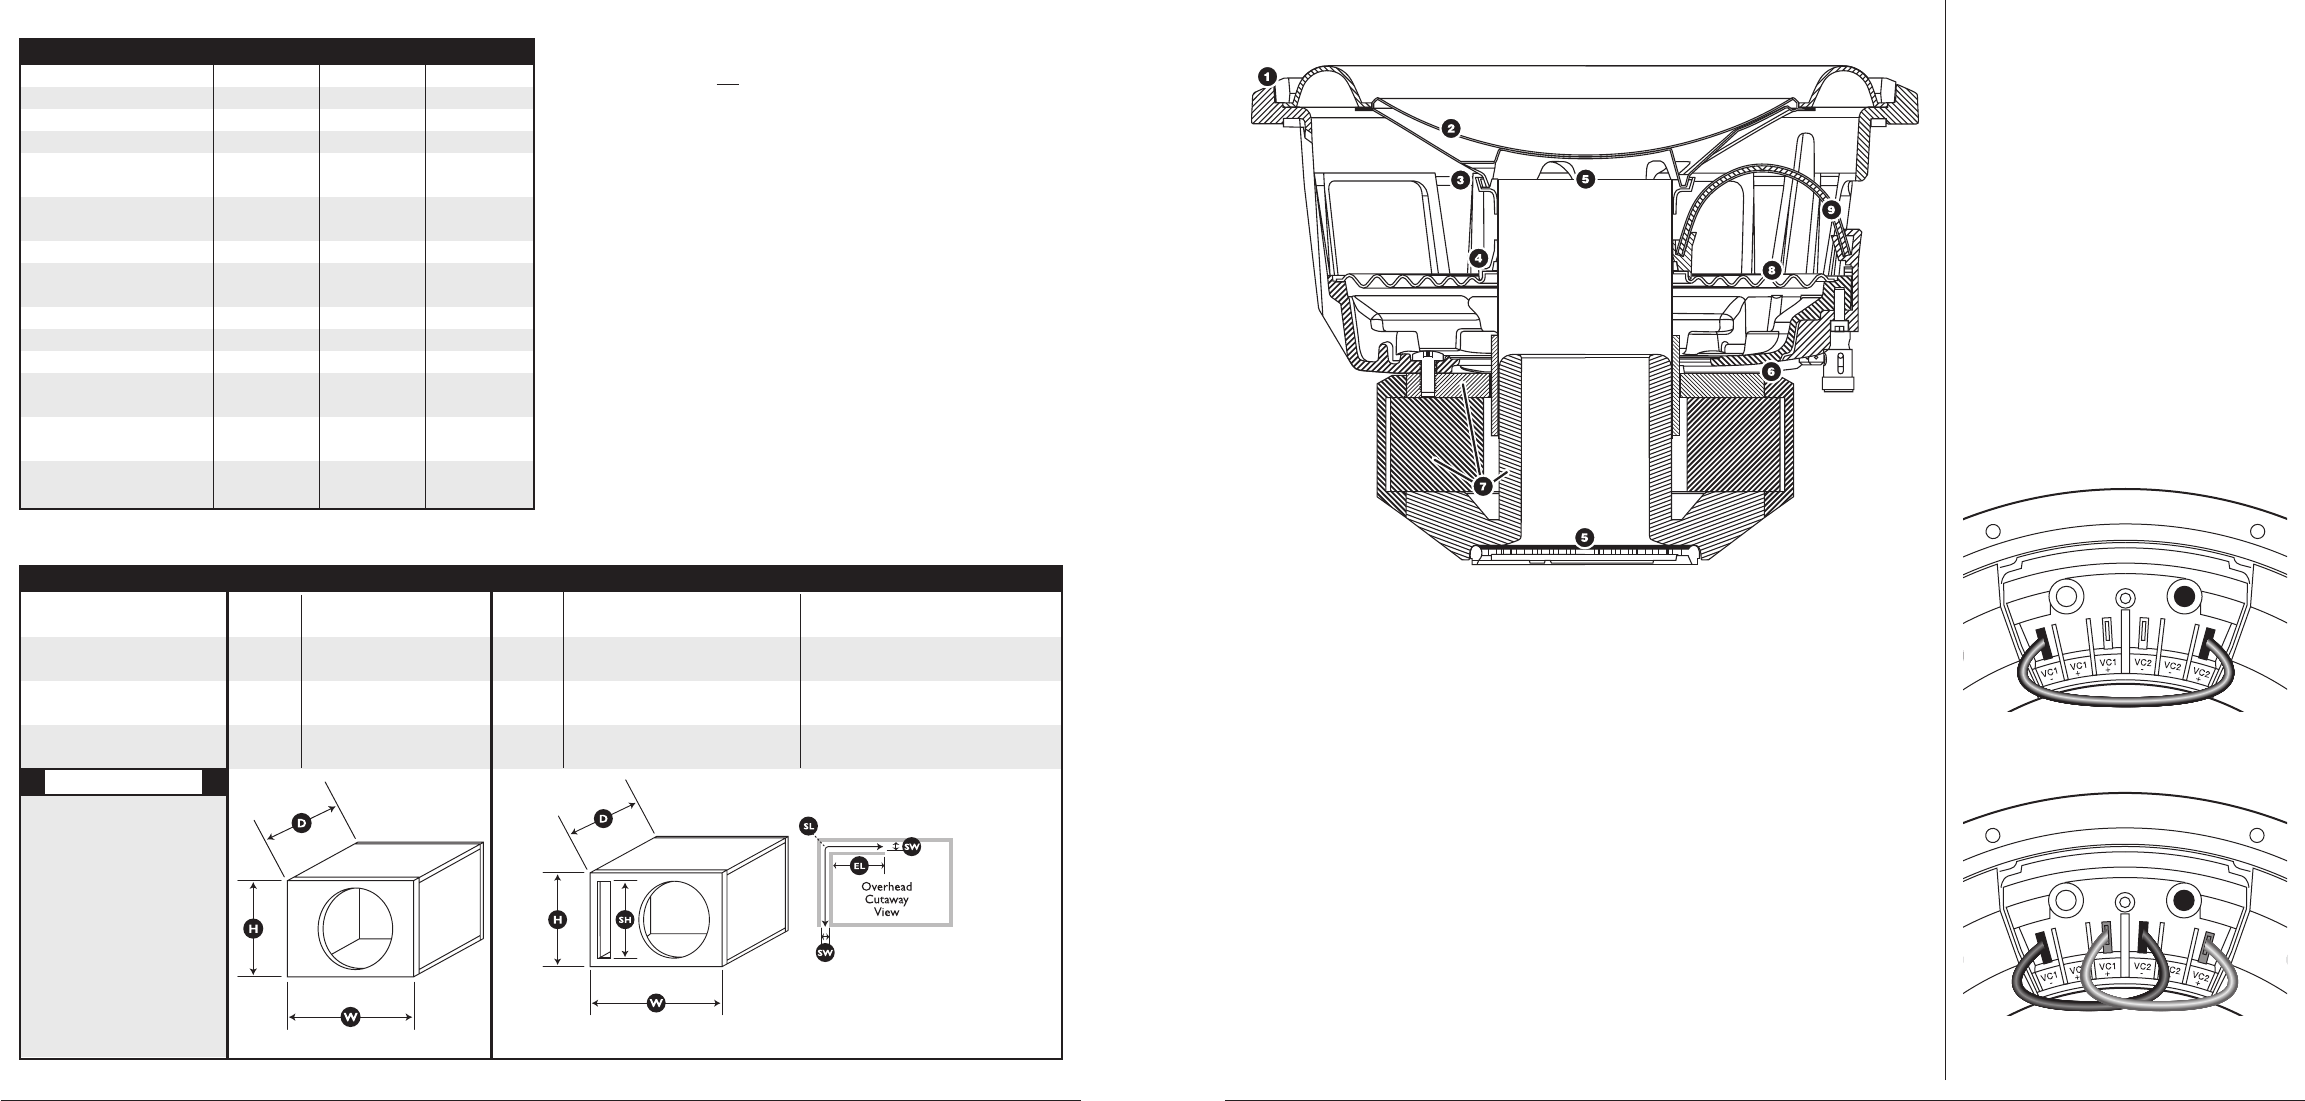 596afd09 064e 6f84 6d6b 3c5d40f0eb41 bg2 jl audio w6v2 wiring diagram 3 dual 4 ohm subs \u2022 wiring diagrams jl audio wiring diagram at readyjetset.co